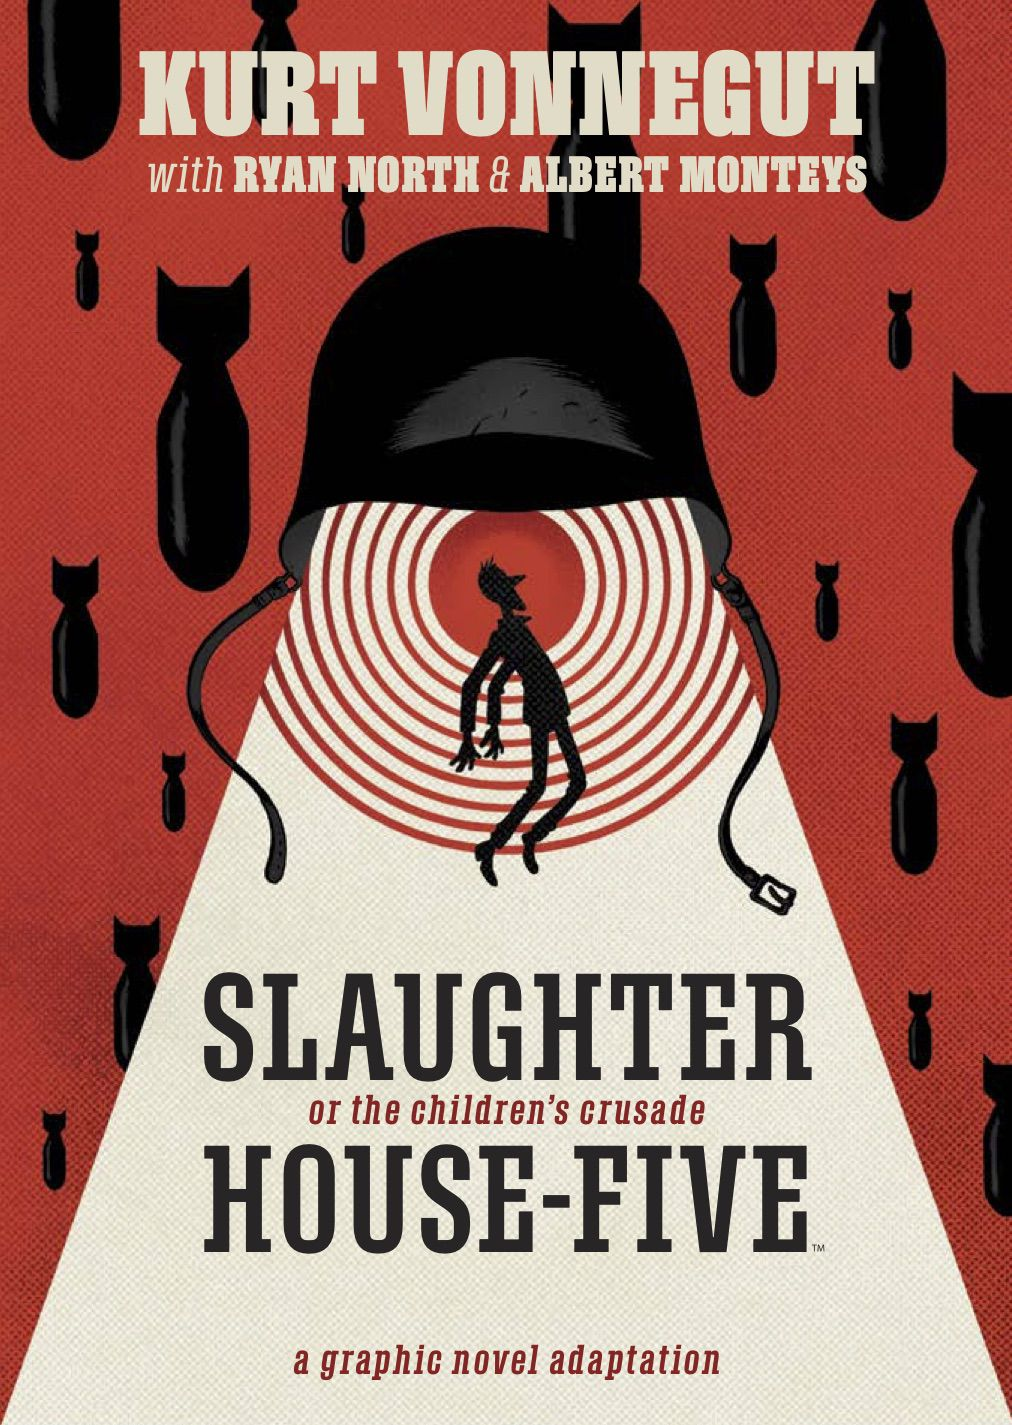 Billy Pilgrim floats upward as if in a tractor beam into a giant military helmet, as bombs rain down around him on the cover of Slaughterhouse-Five (2020).